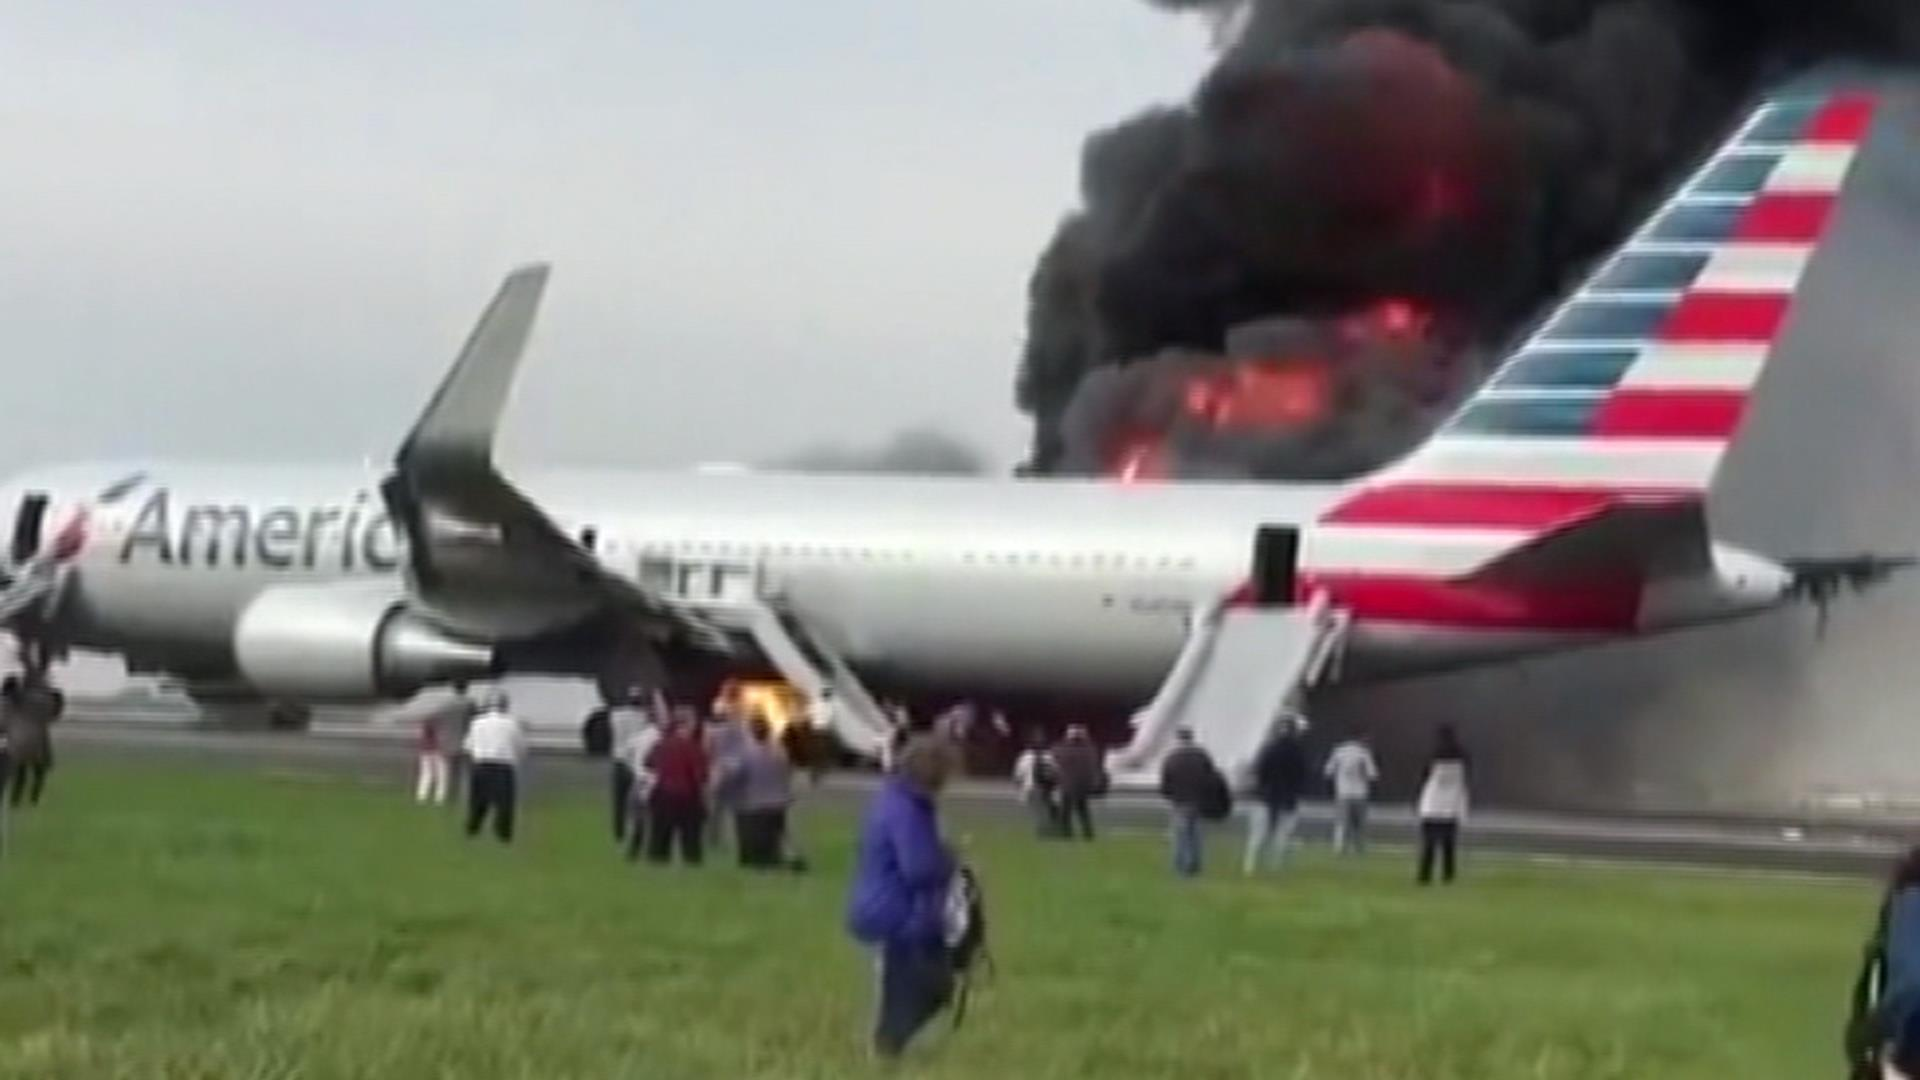 Fire Smoke Seen From American Airlines Flight 383 Nbc News